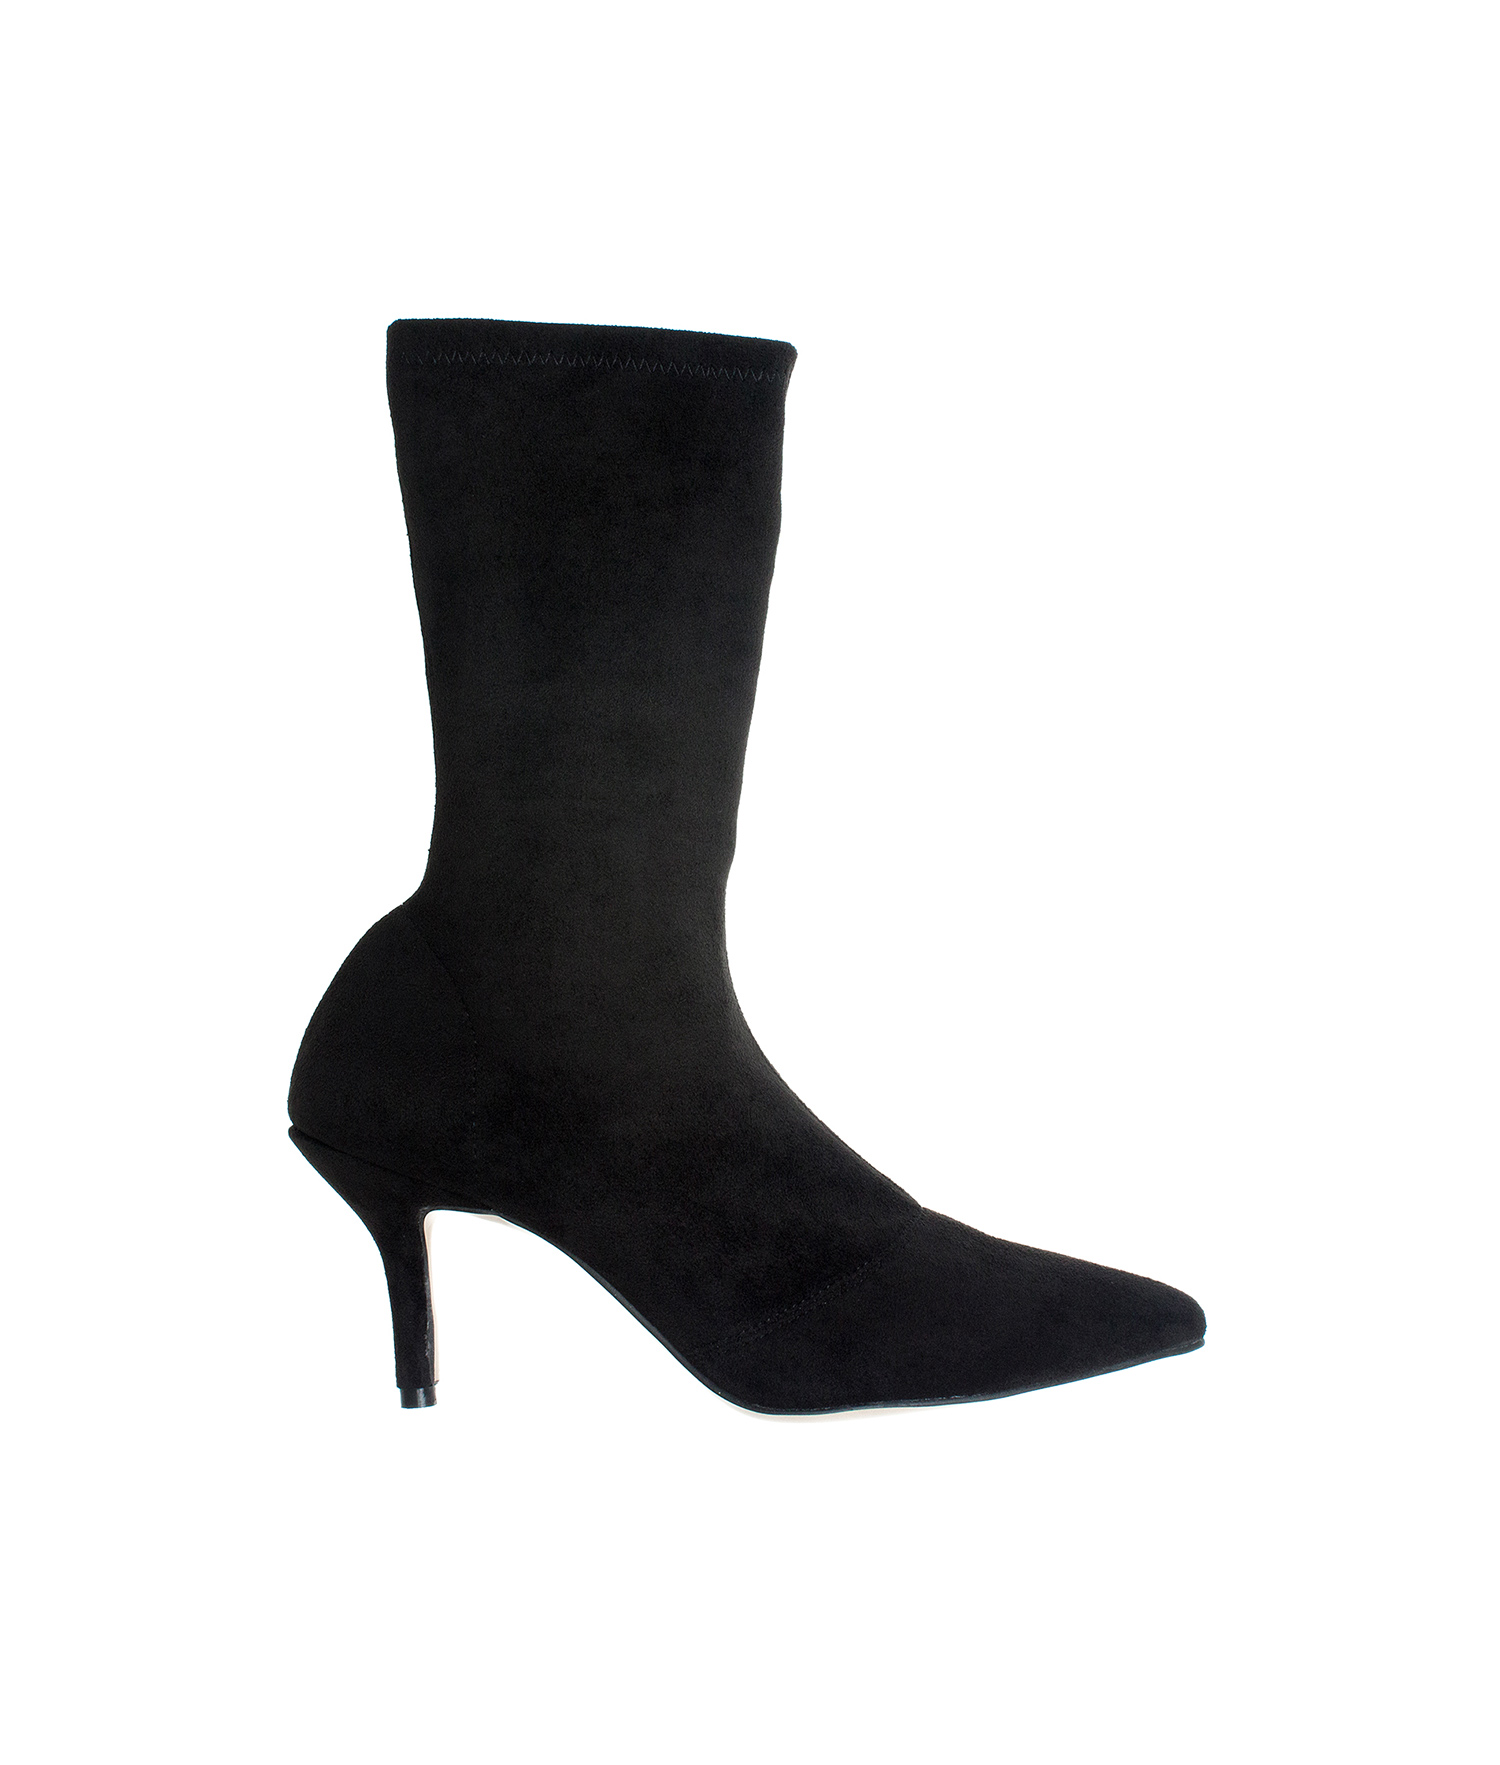 AnnaKastle Womens Pointy Toe Stretch Mid-Calf Boots Kitten Heel Booties  SuedeBlack ed9477c3a